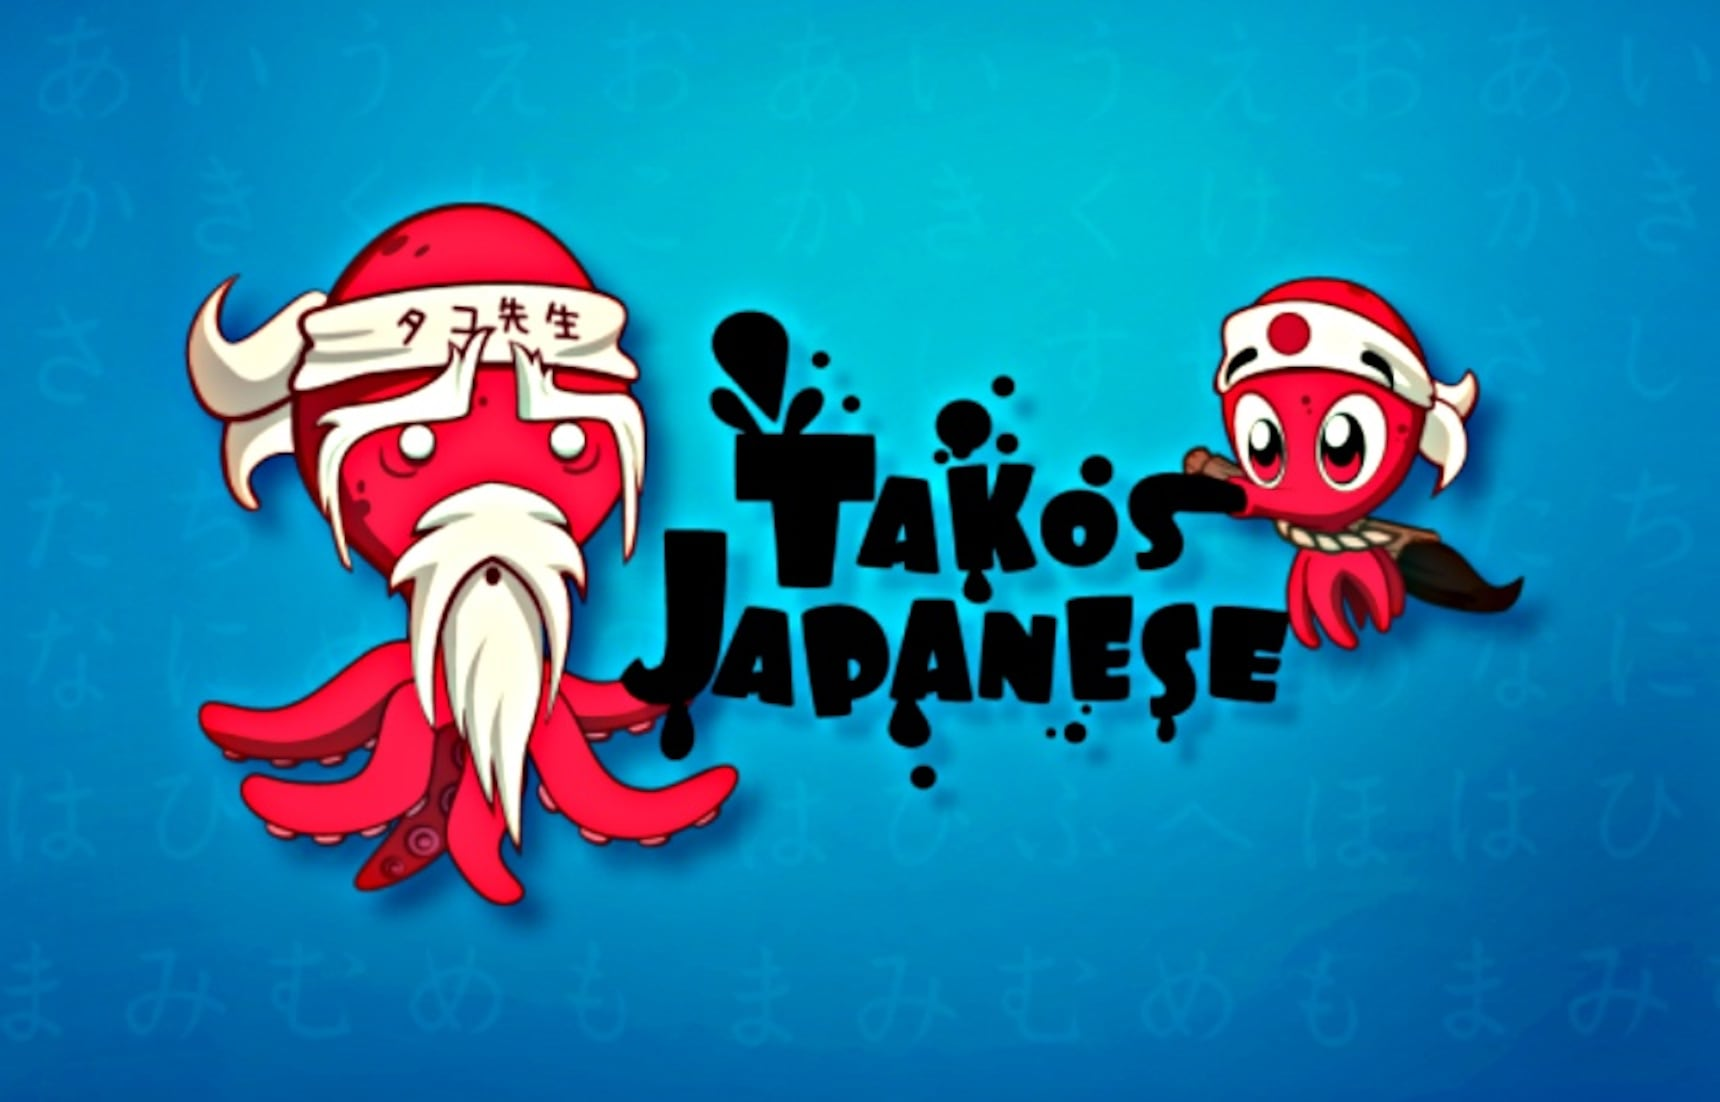 Learn Japanese with a Five-Armed Octoped